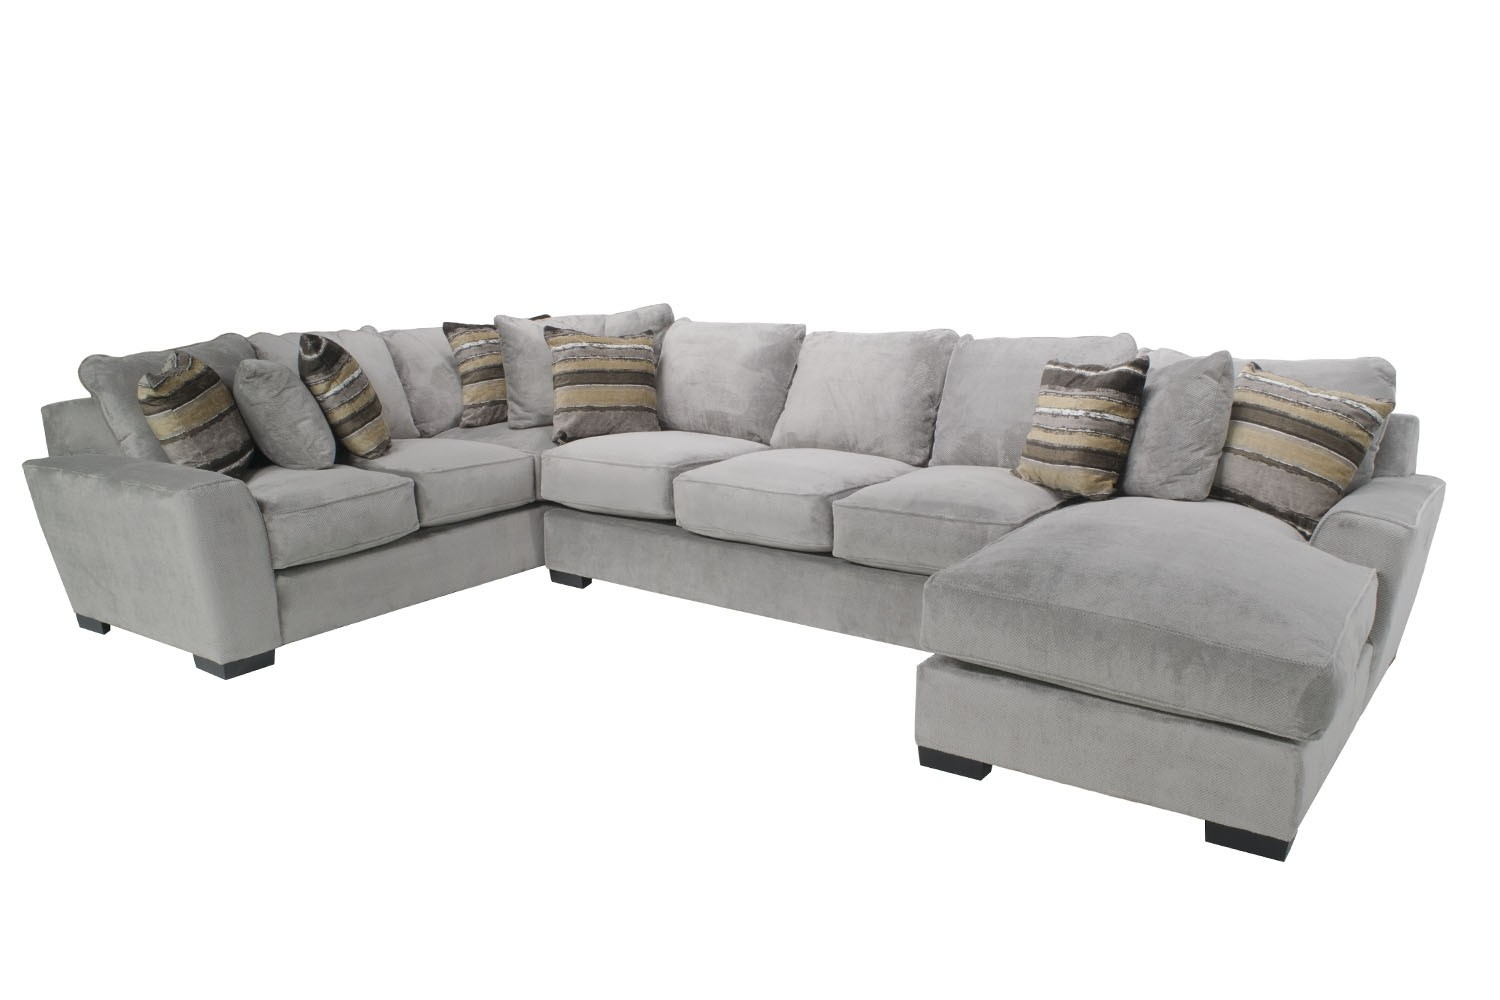 Oracle Sectional Living Room - Living Room | Mor Furniture for Less